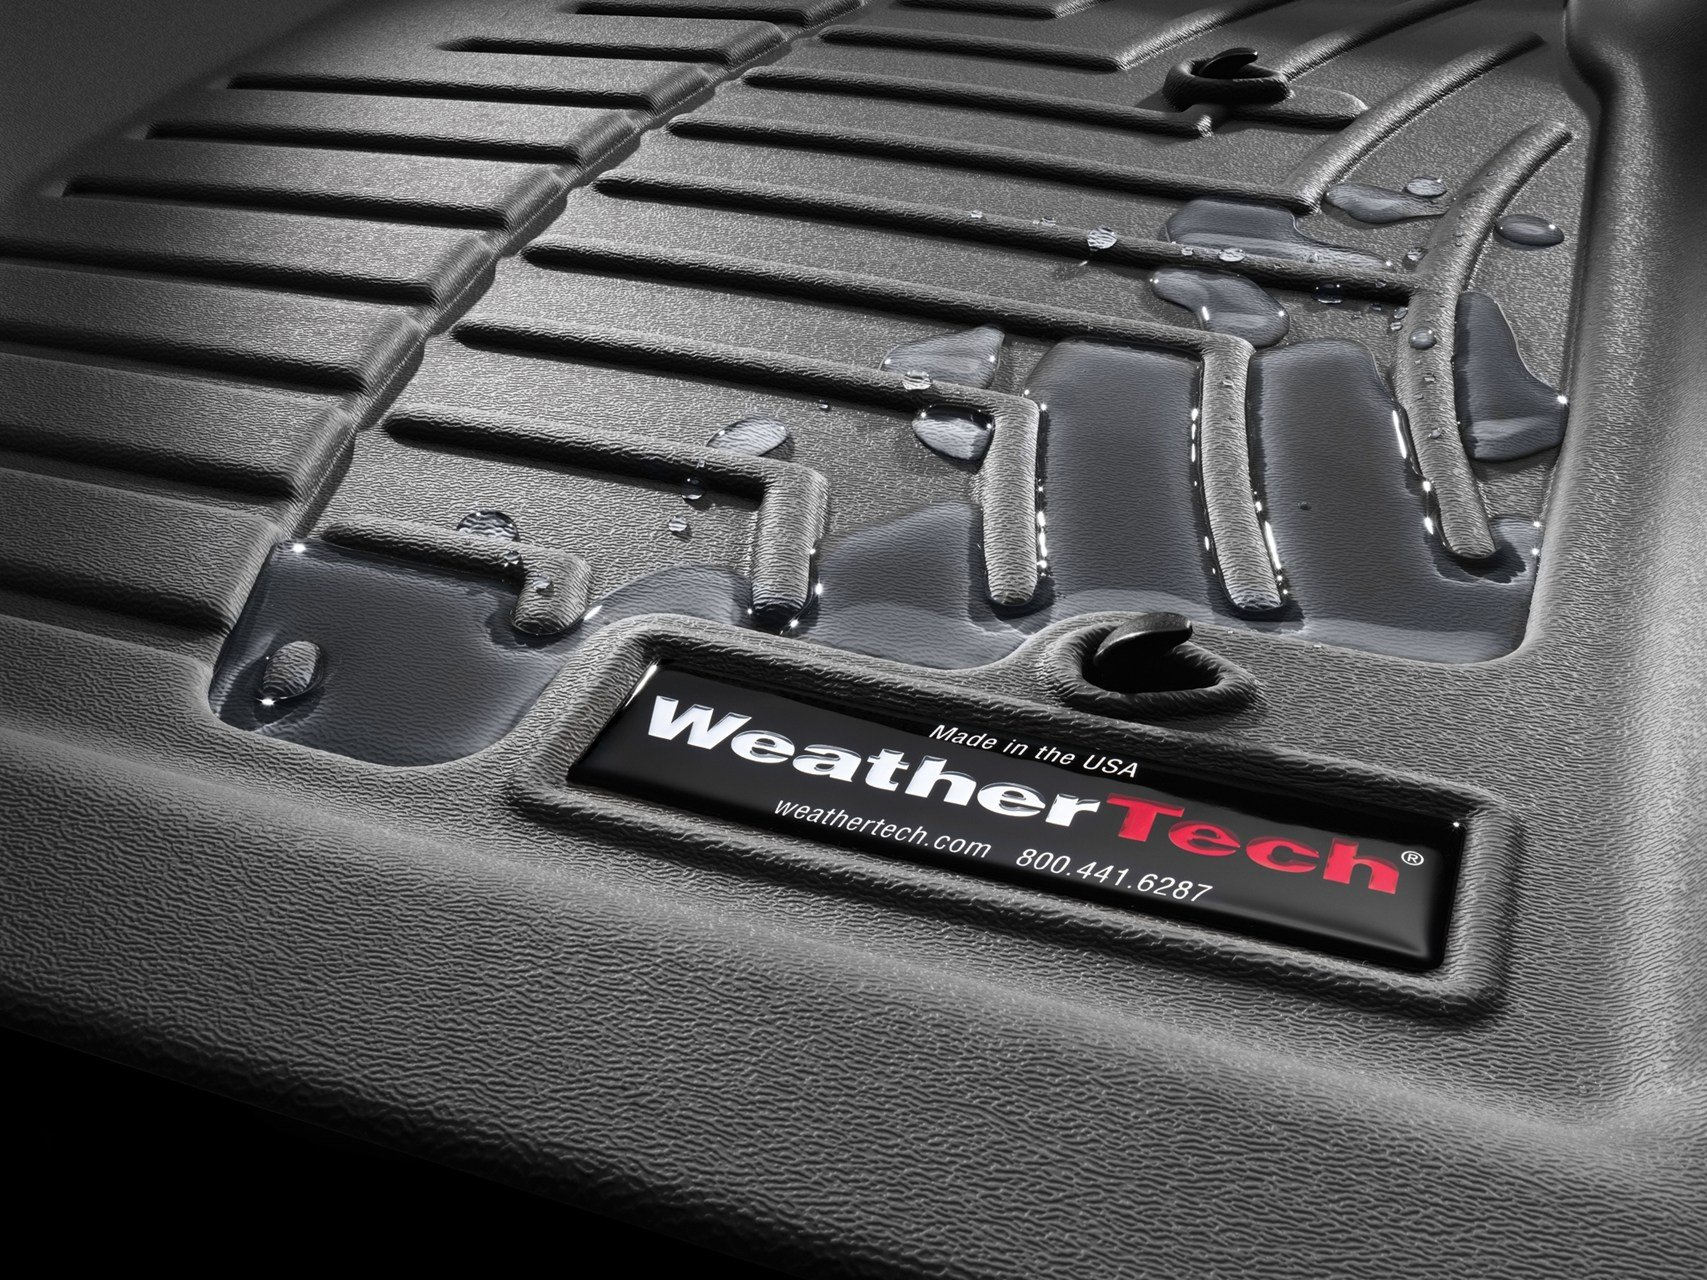 WeatherTech Compatible with 2016 Ford F-150 Floor Liners-Full Set (Includes 1st Row-Over-The-Hump and 2nd Row Uni-Liner) SuperCab (Extended Cab)-1st Row Bench-Black by WeatherTech (Image #1)